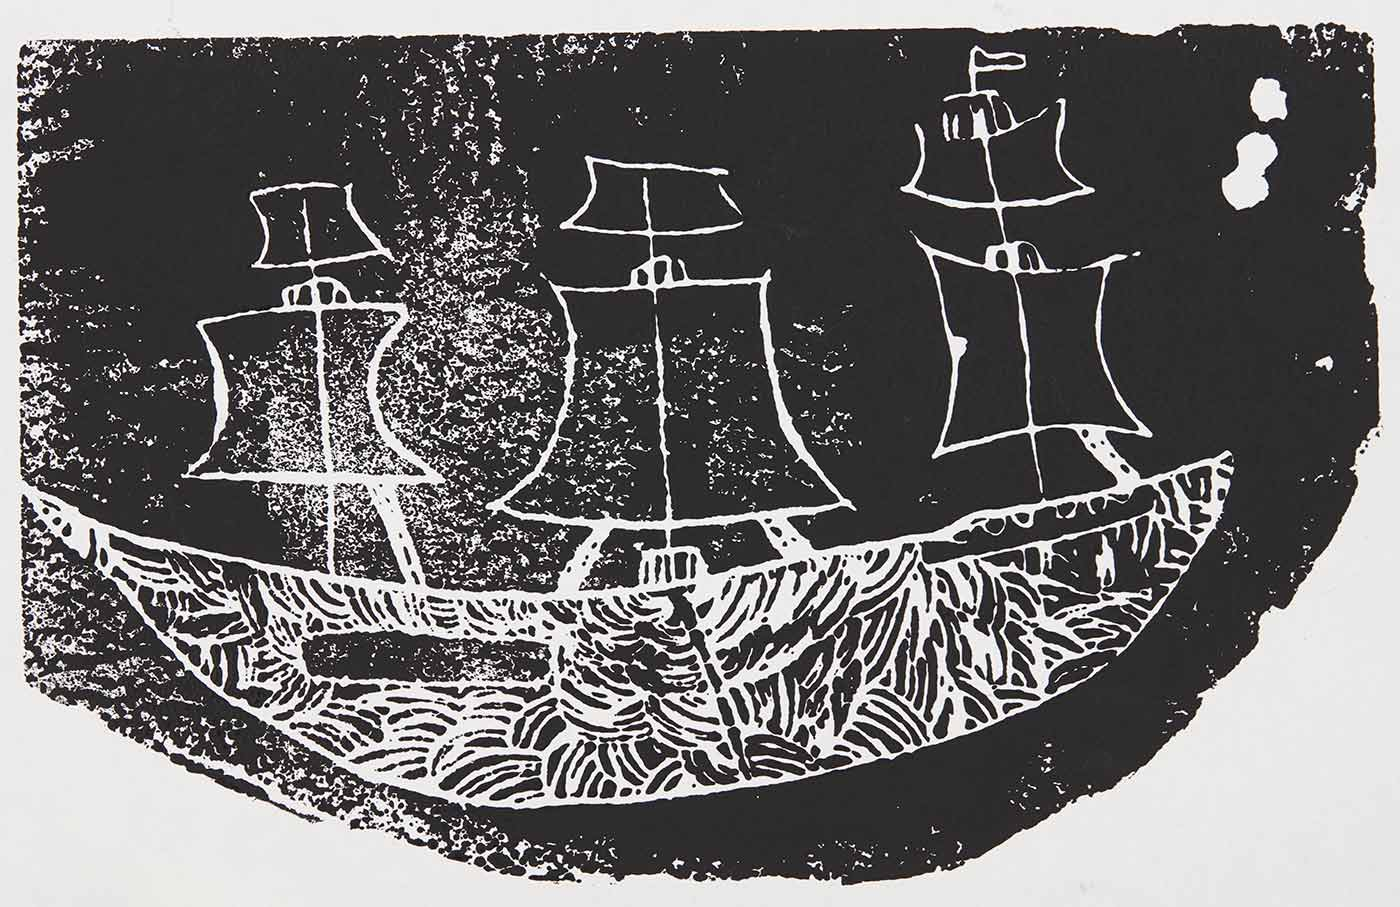 A black print on white cardboard featuring a ship with curve concentric patterns across the hull of the ship. - click to view larger image